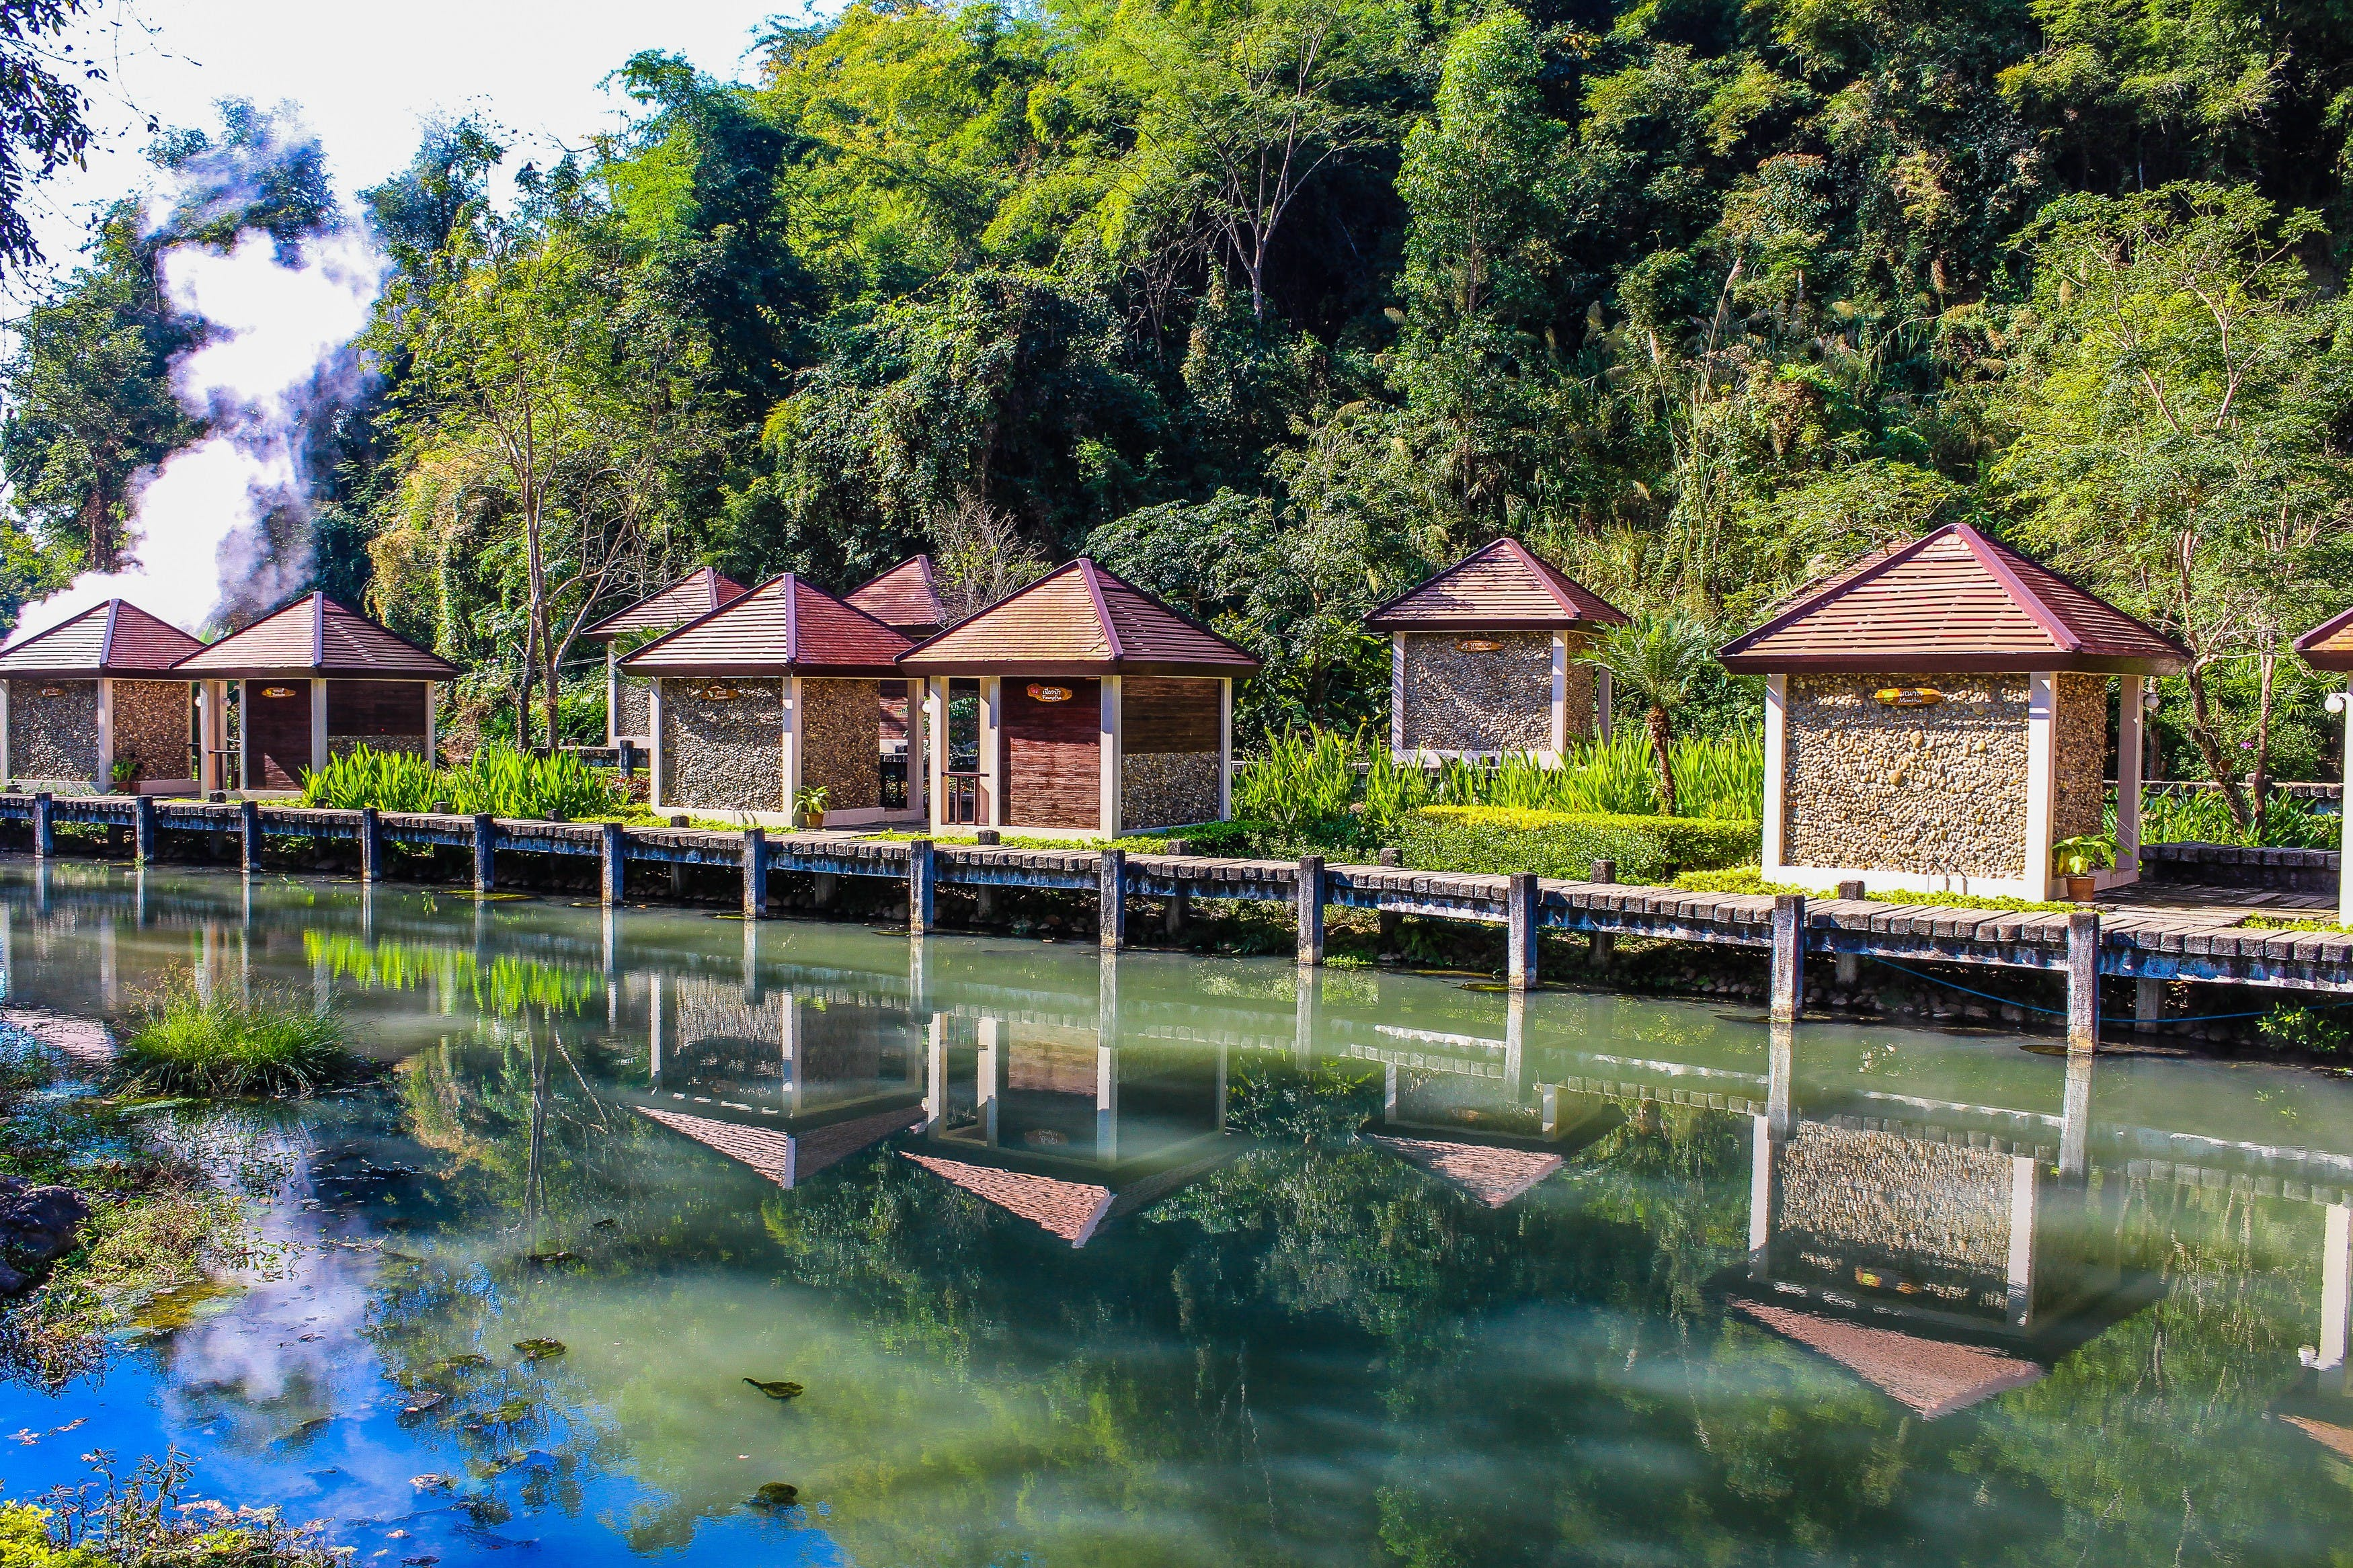 Kiosks Near Calm Body of Water Surrounded by Tall Trees at Daytime